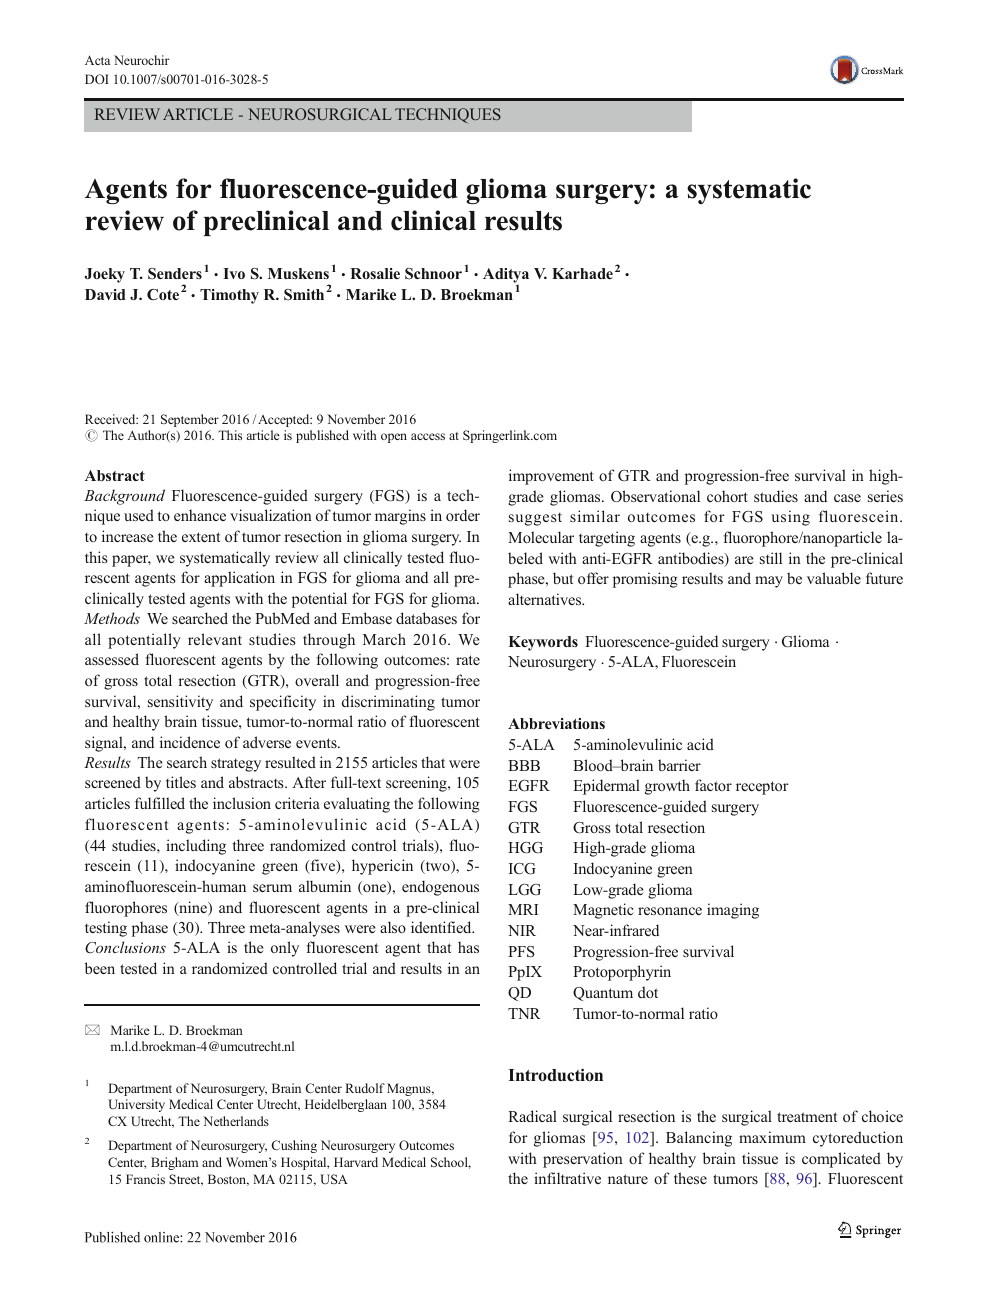 Agents for fluorescence-guided glioma surgery: a systematic